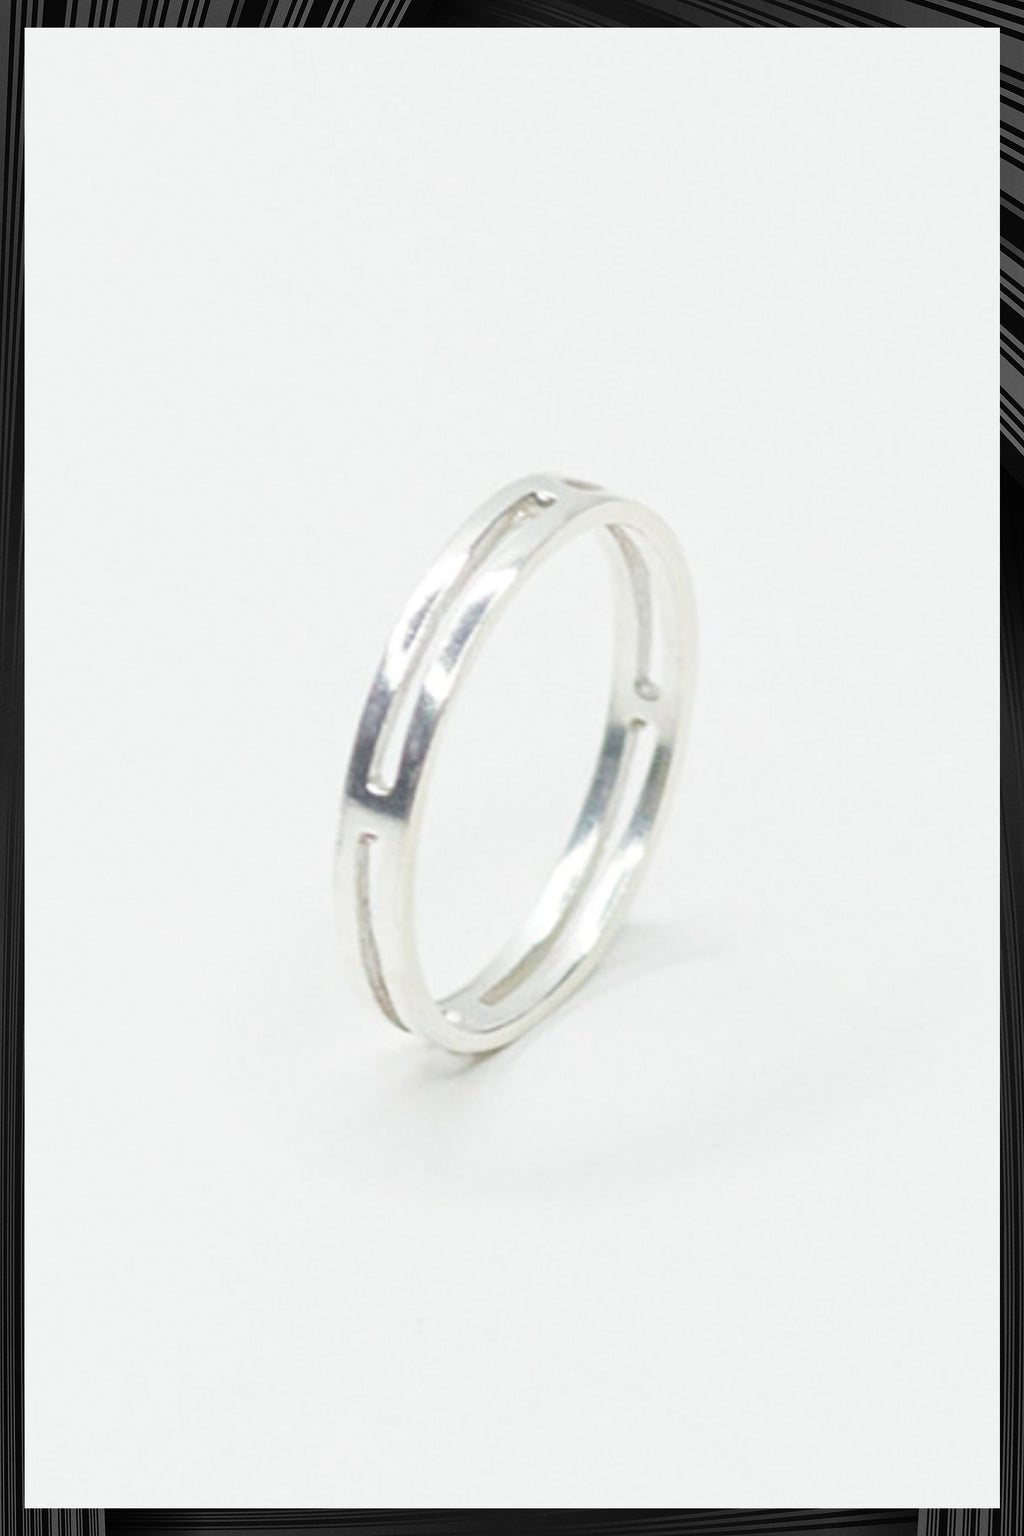 Single Not Married Silver Ring | Free Delivery - 2-3 Week Shipping